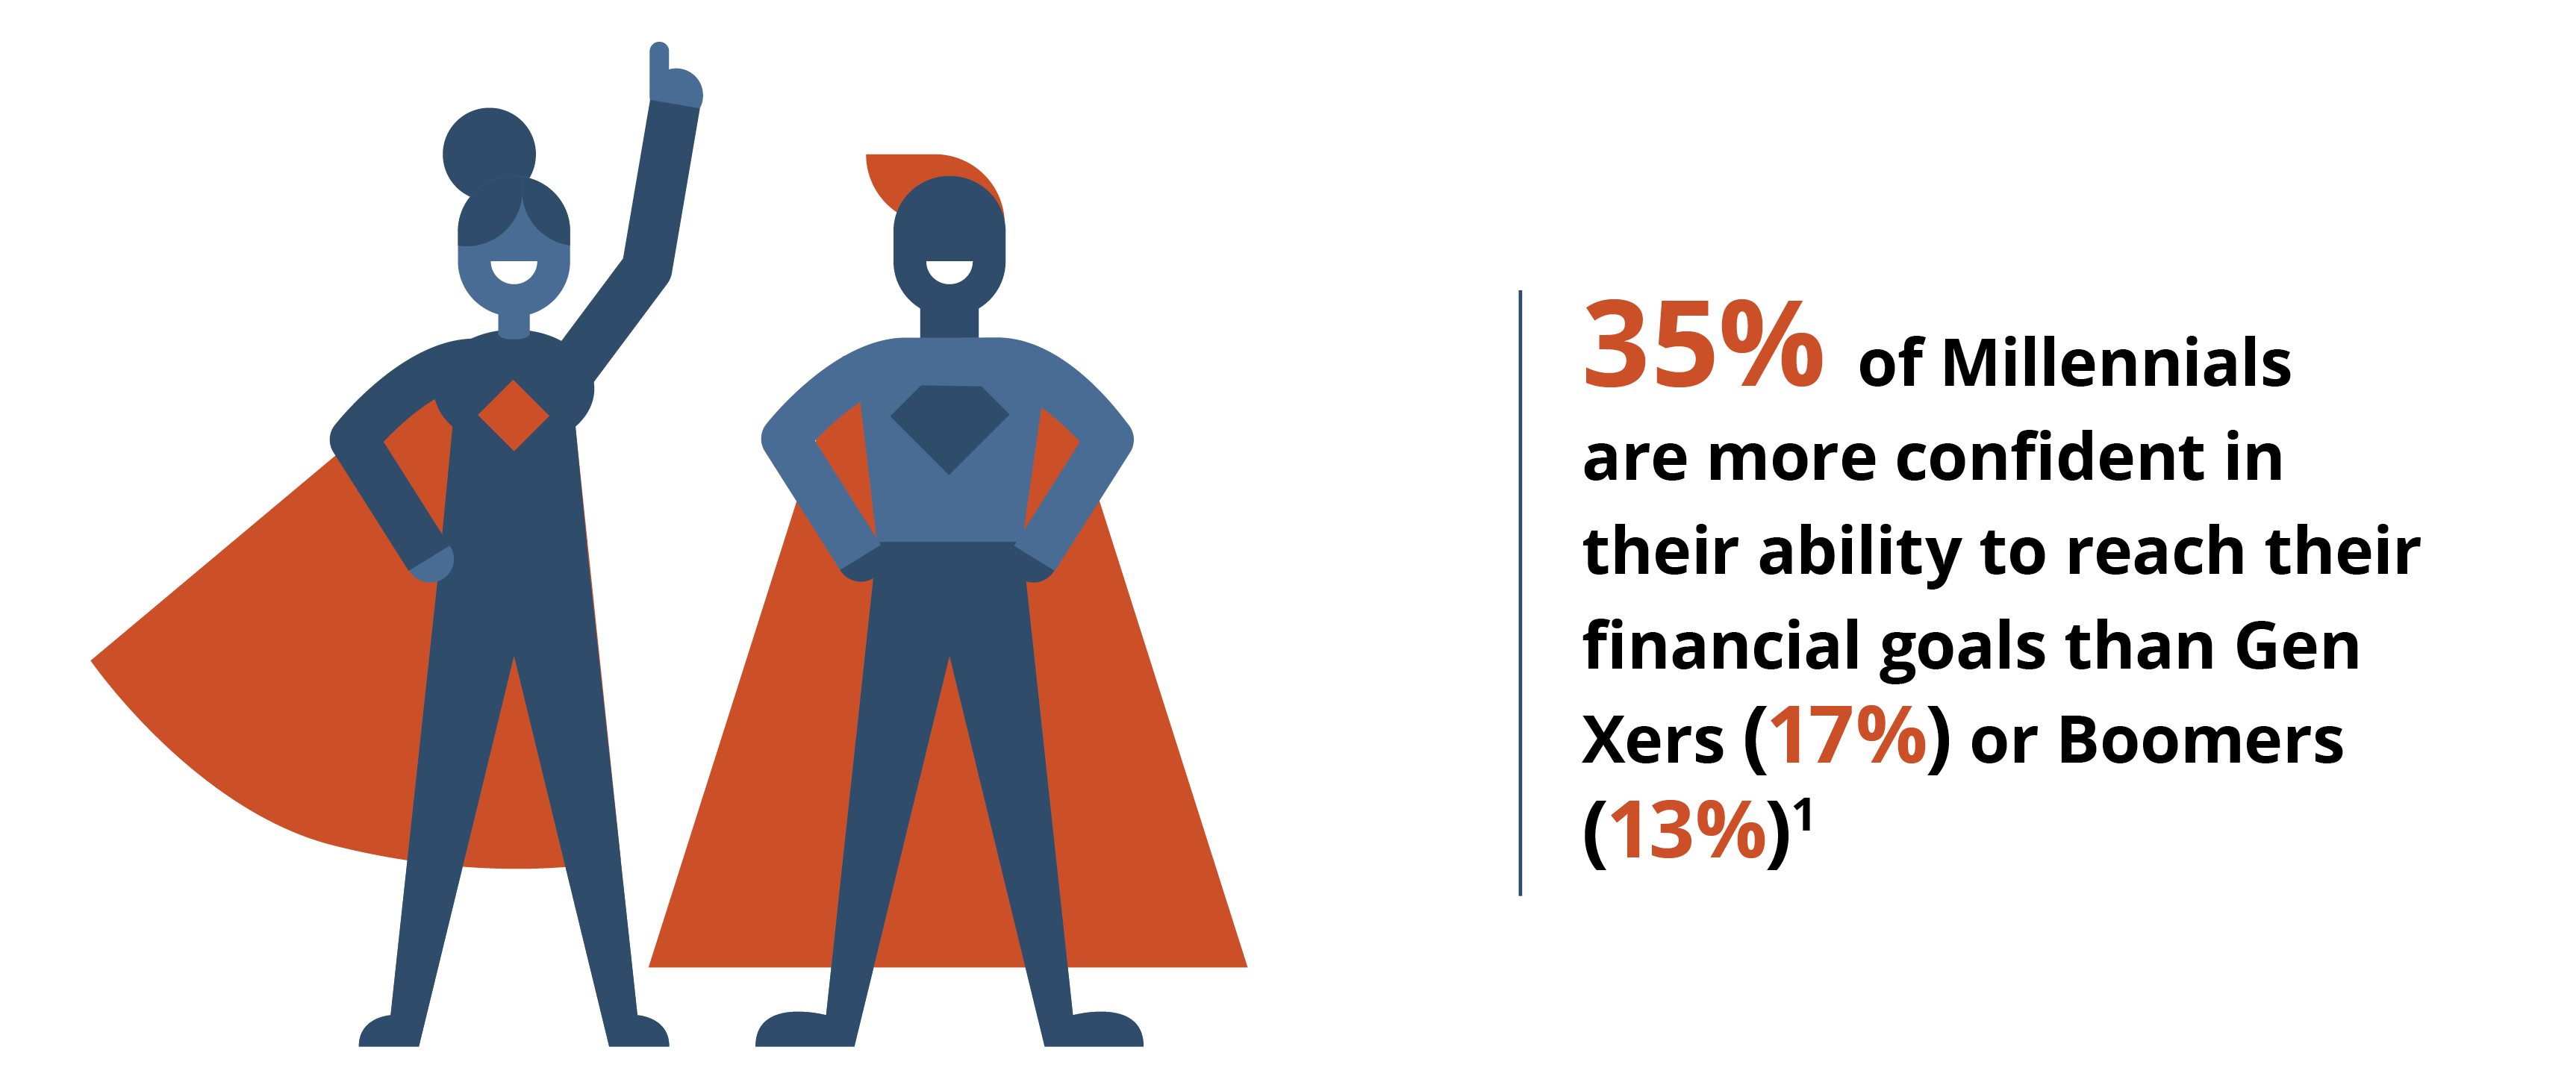 35% of Millennials are more confident in their ability to reach their financial goals than Gen Xers (17%) or Boomers (13%)